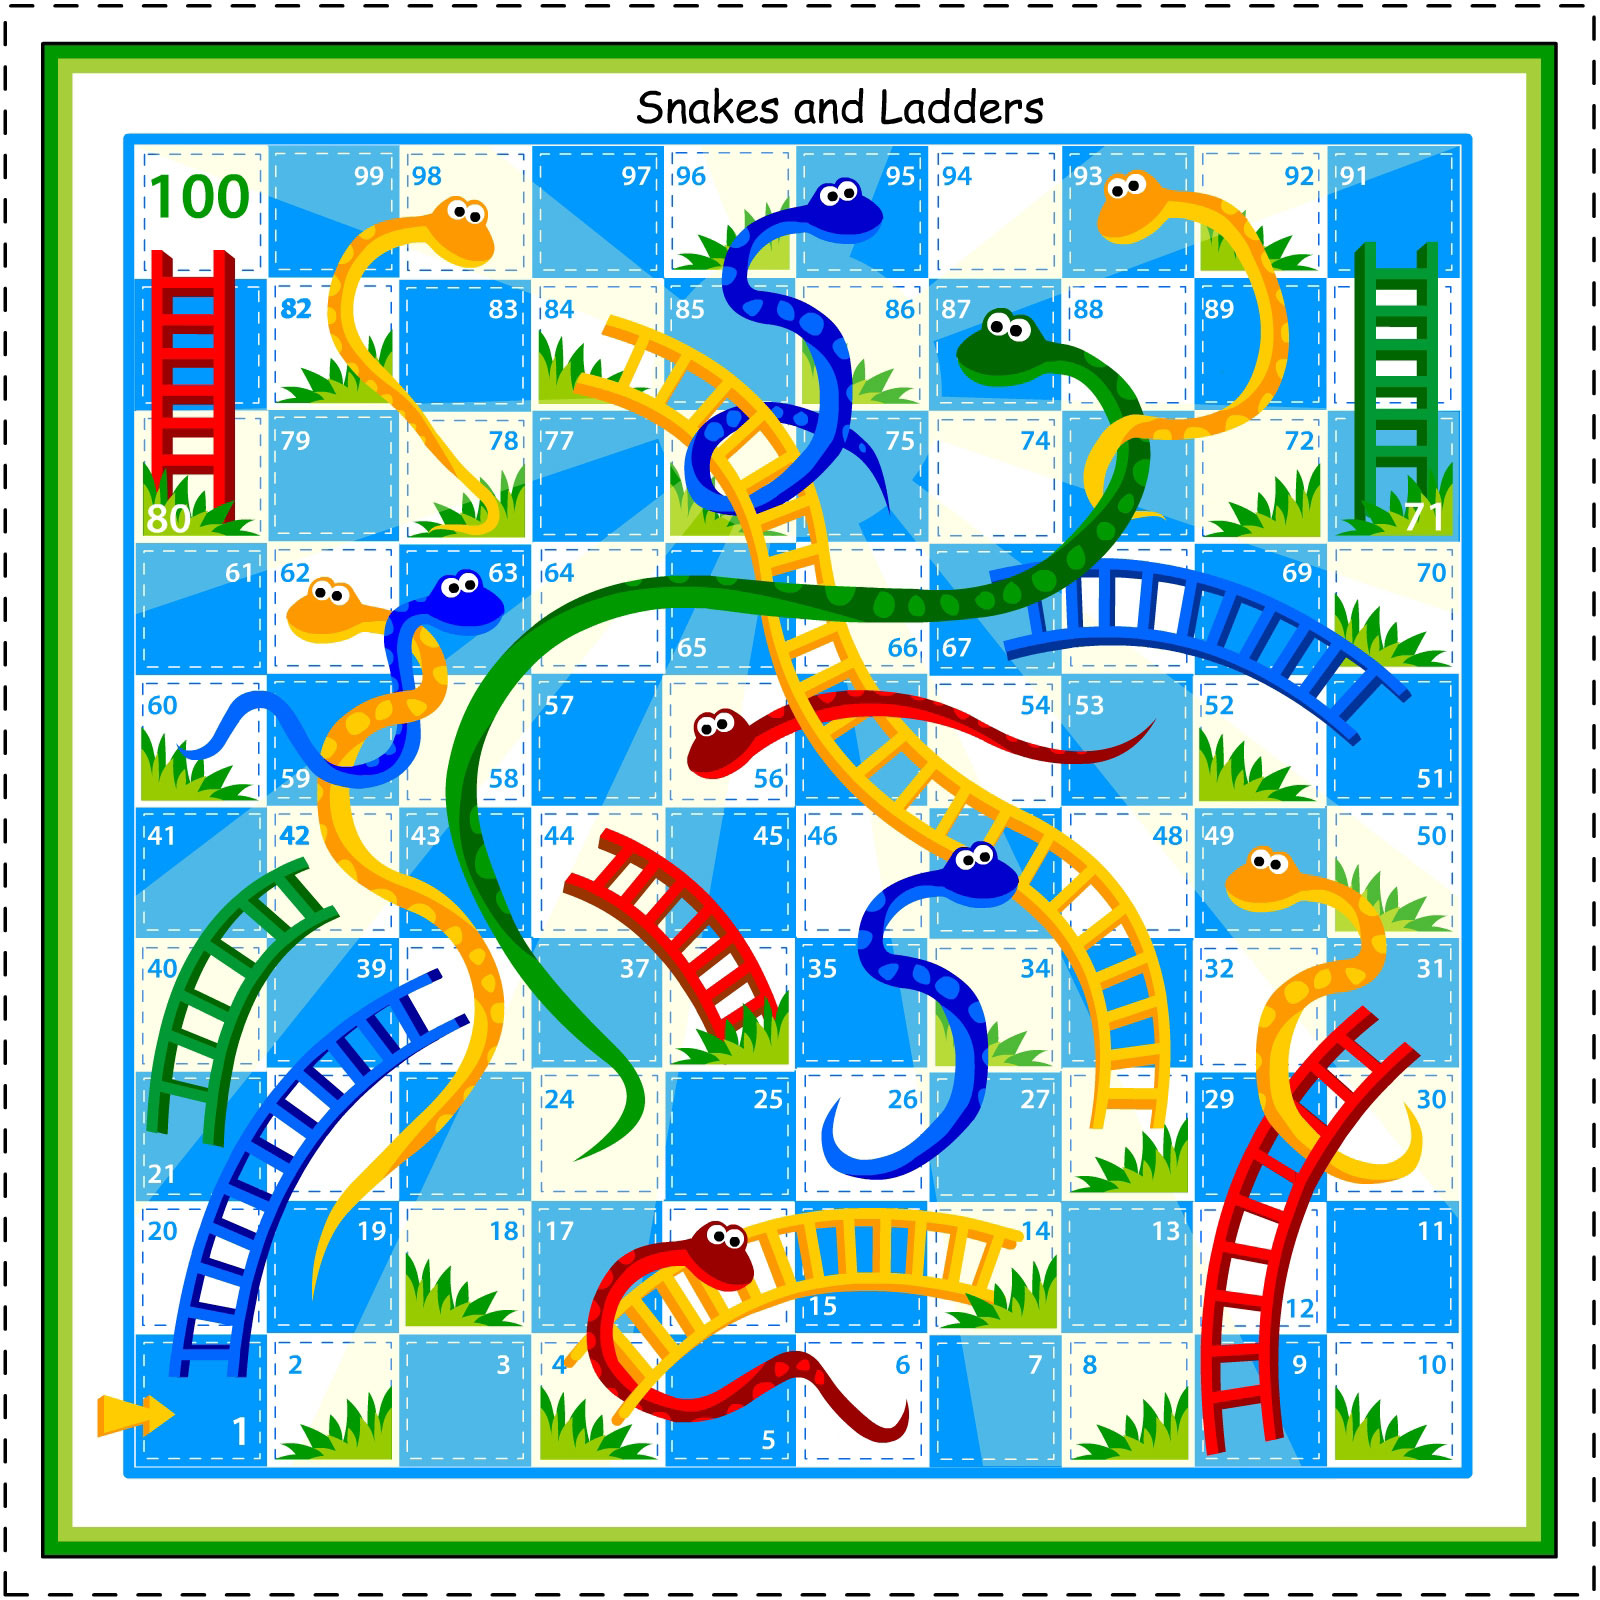 Kids Under 7: Snakes and Ladders board game